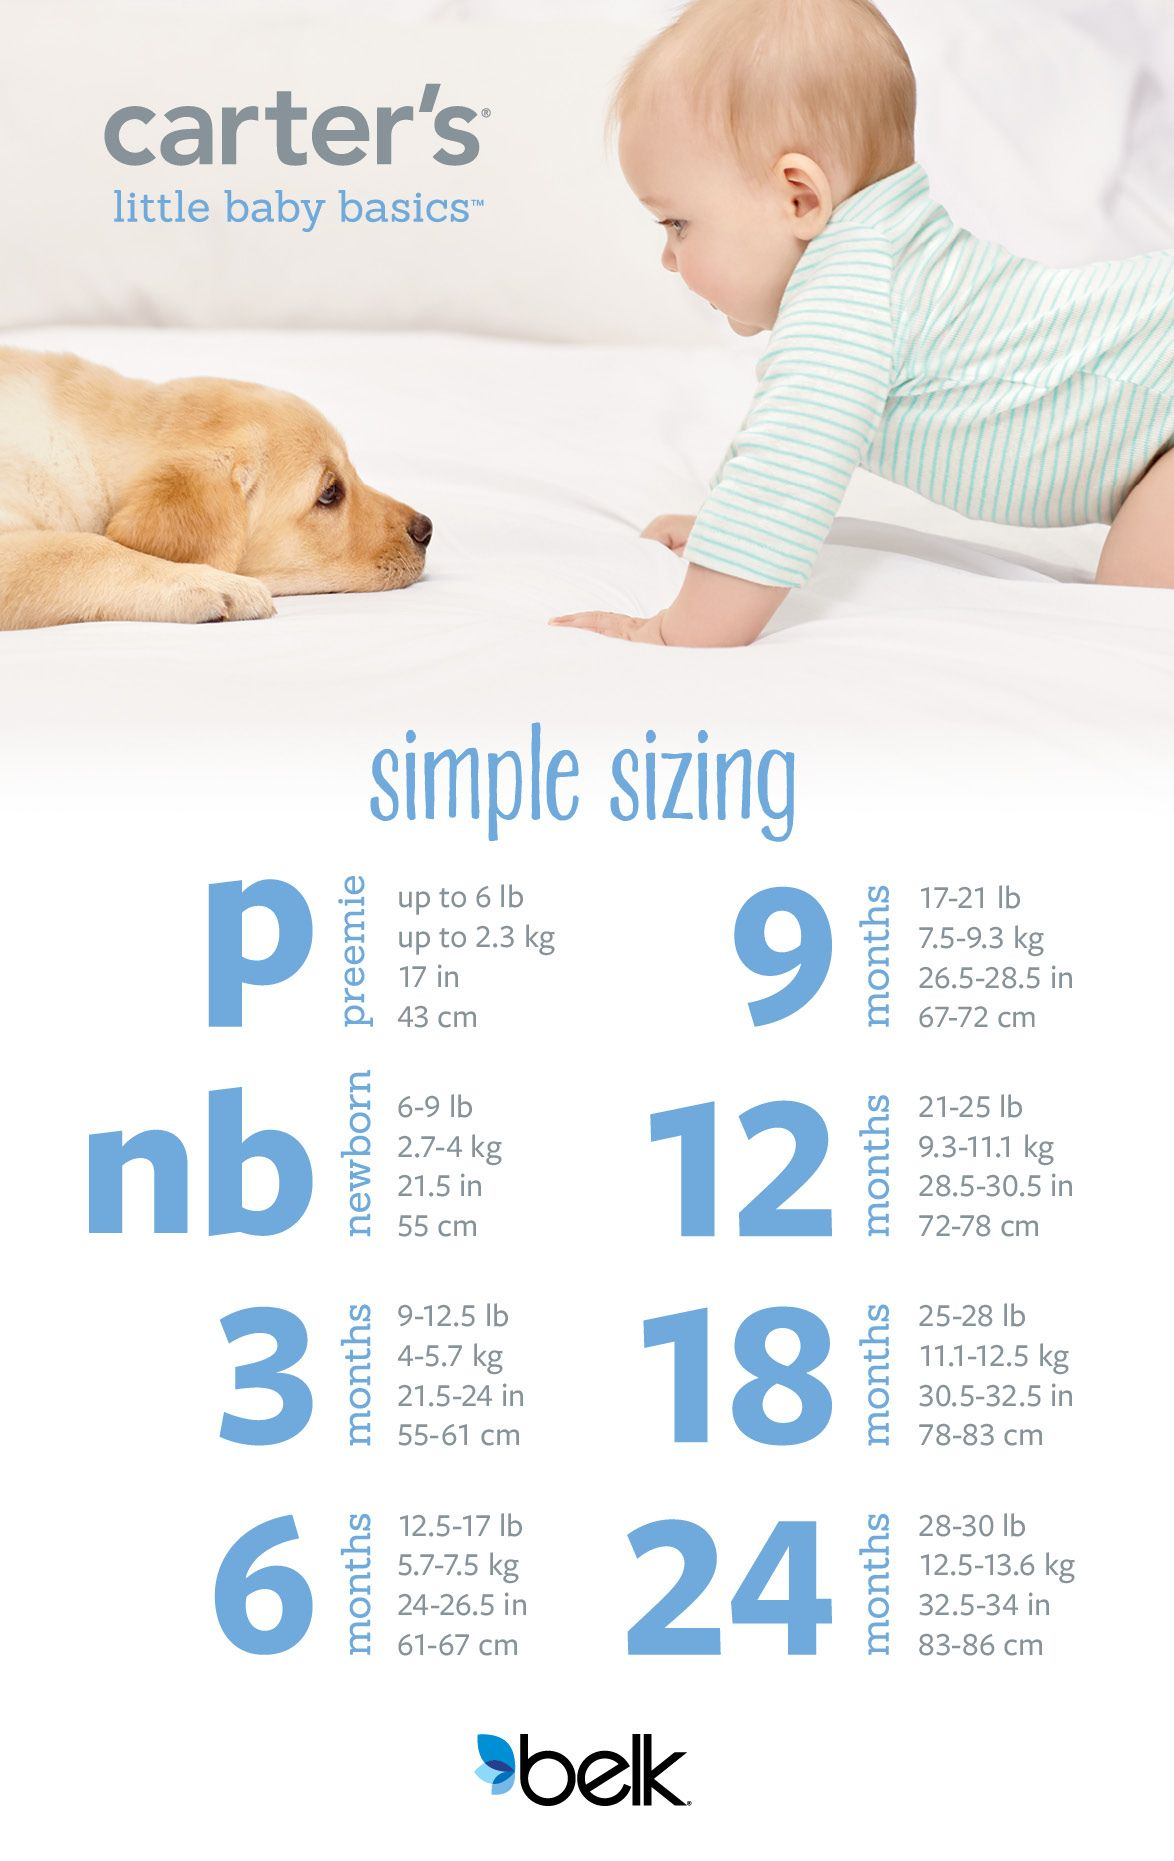 Your guide to simple sizing for your little one an easy look at its hard to know what size to buy baby we hope this simple guide helps our preemie size now fits up to 6 lbs and when in doubt just buy a size nvjuhfo Choice Image